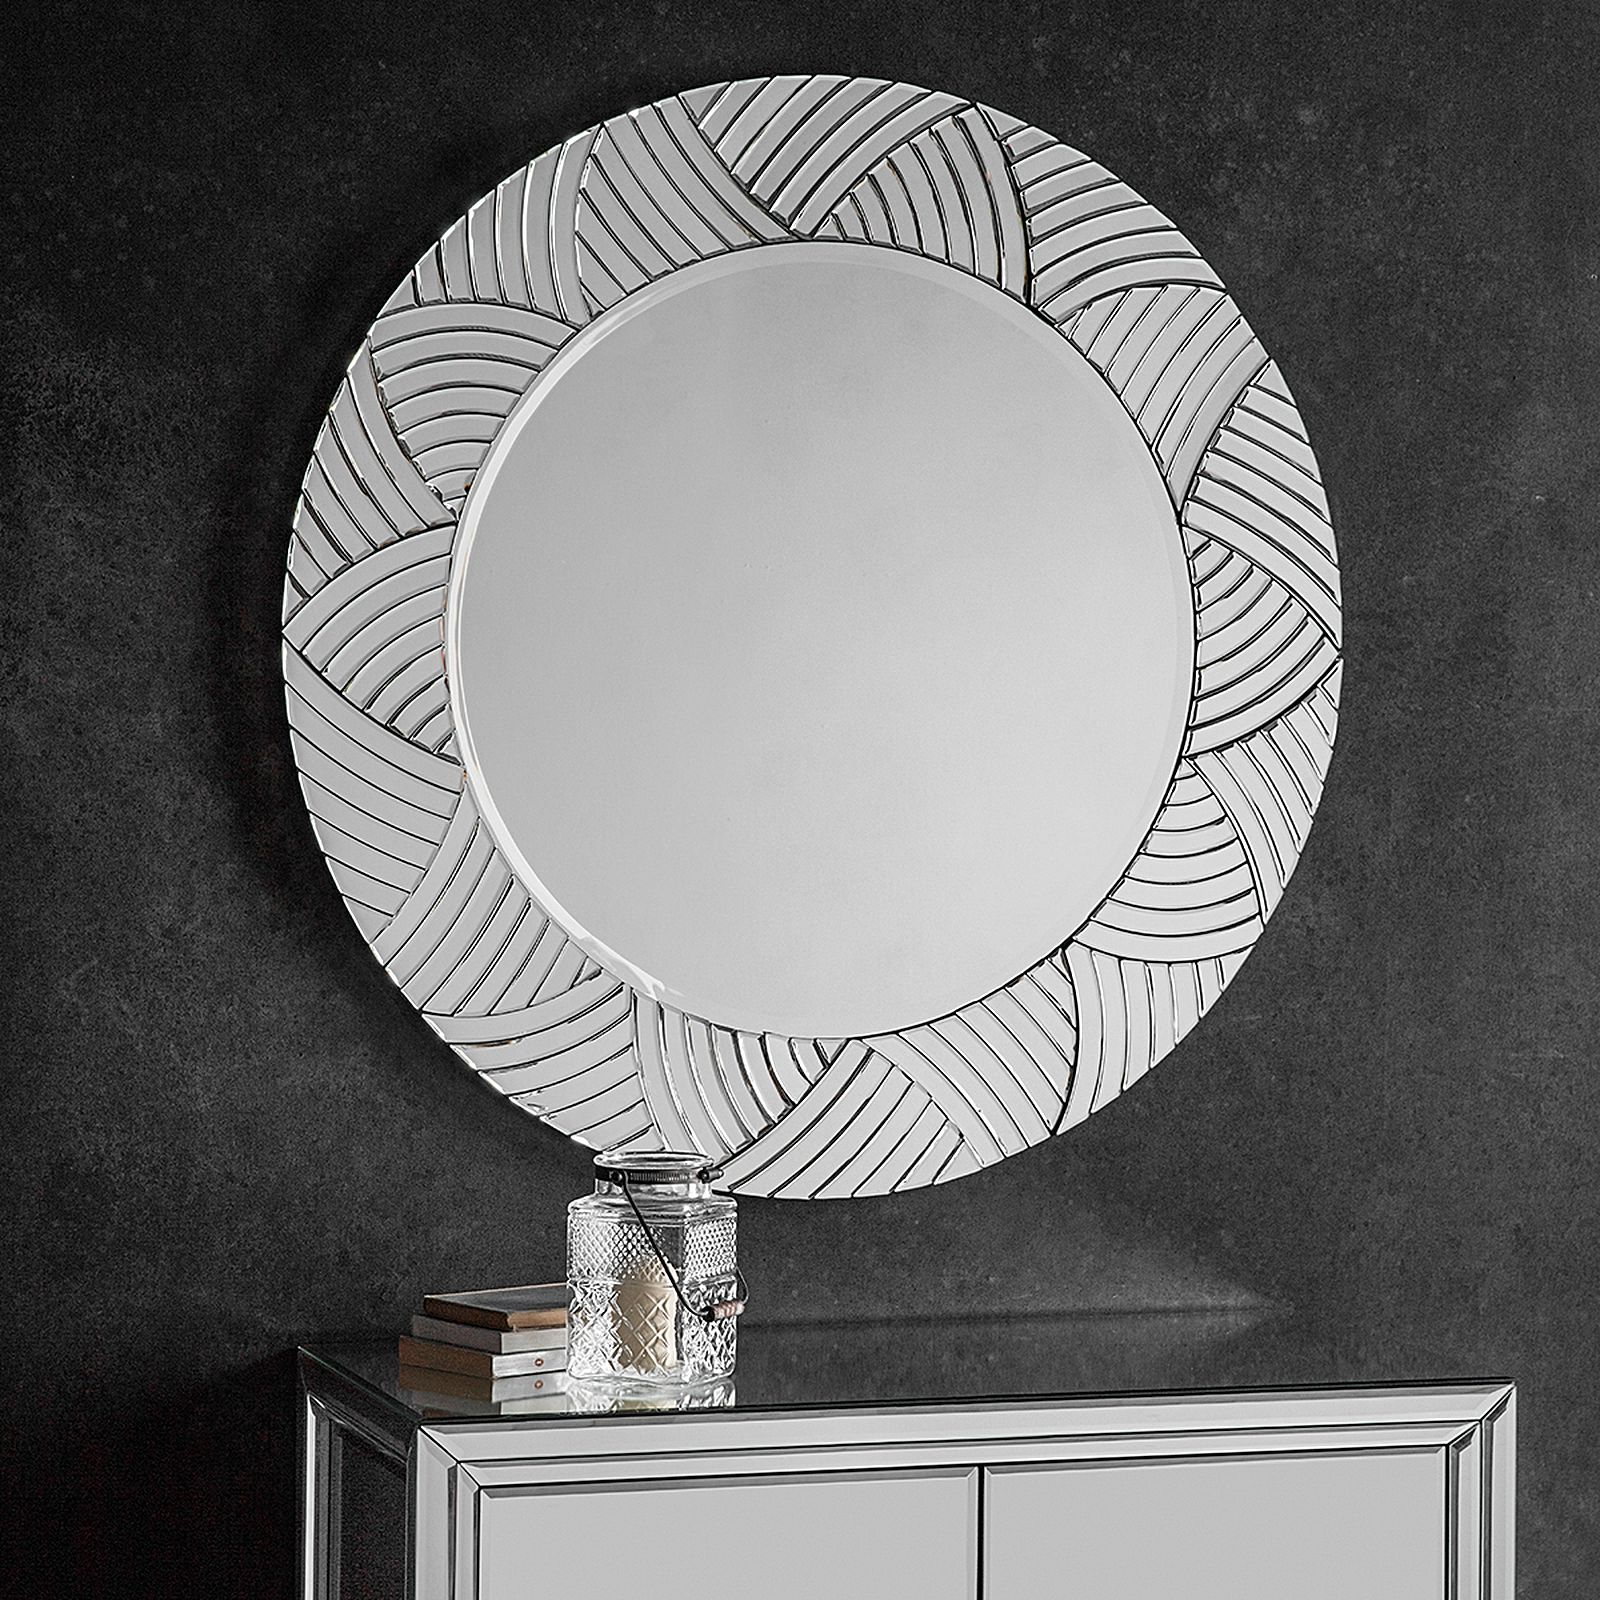 Pearson Round Wall Mirror Intended For 2020 Circular Wall Mirrors (View 11 of 20)